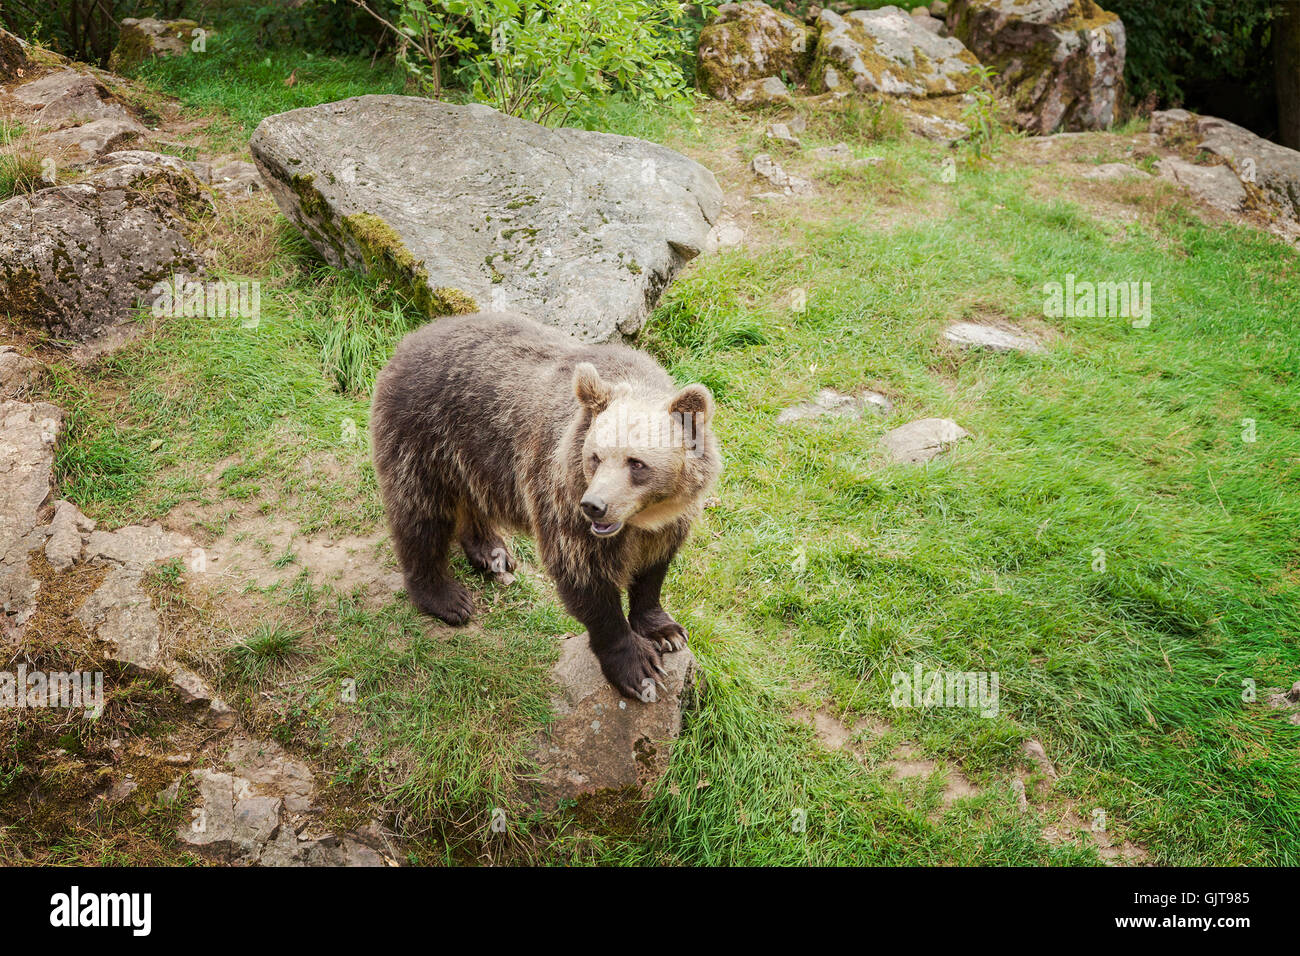 Image of a brown bear in an animal park. Sweden. - Stock Image